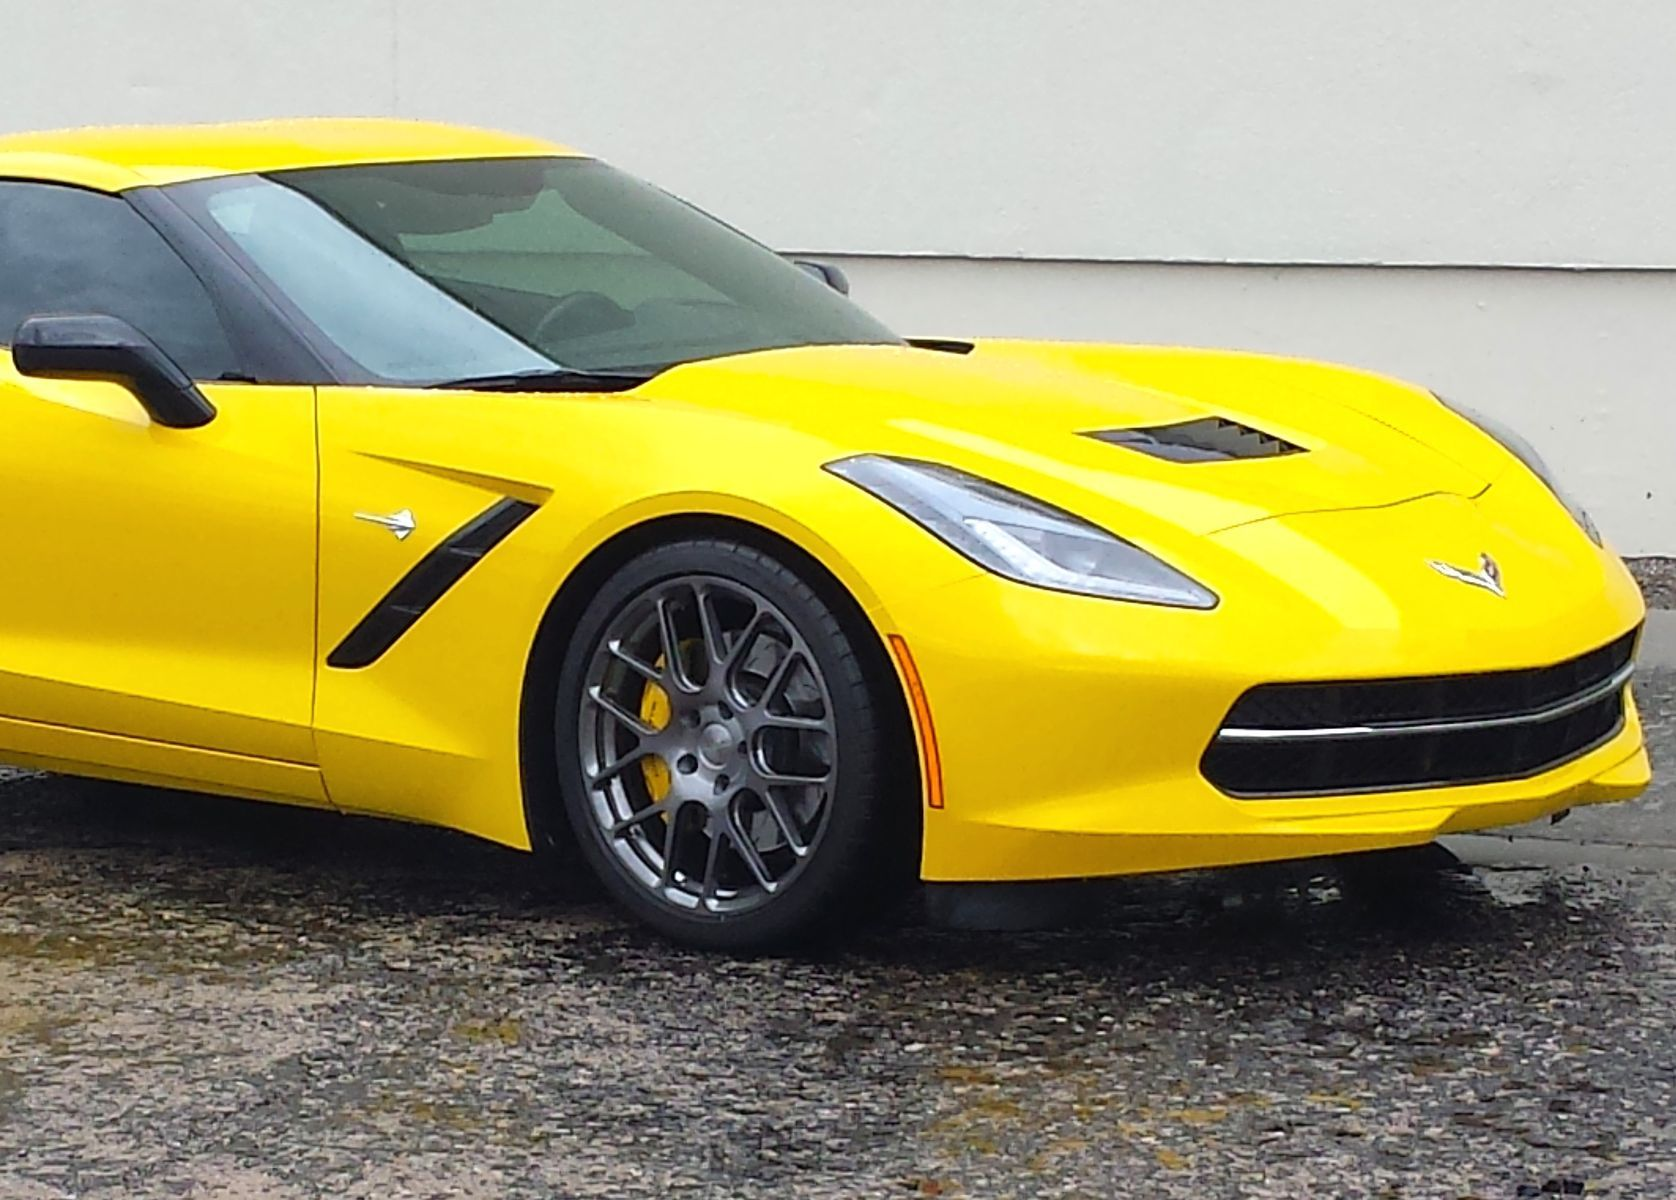 2015 Chevrolet Corvette | C7 Corvette on Forgeline SE1 Wheels